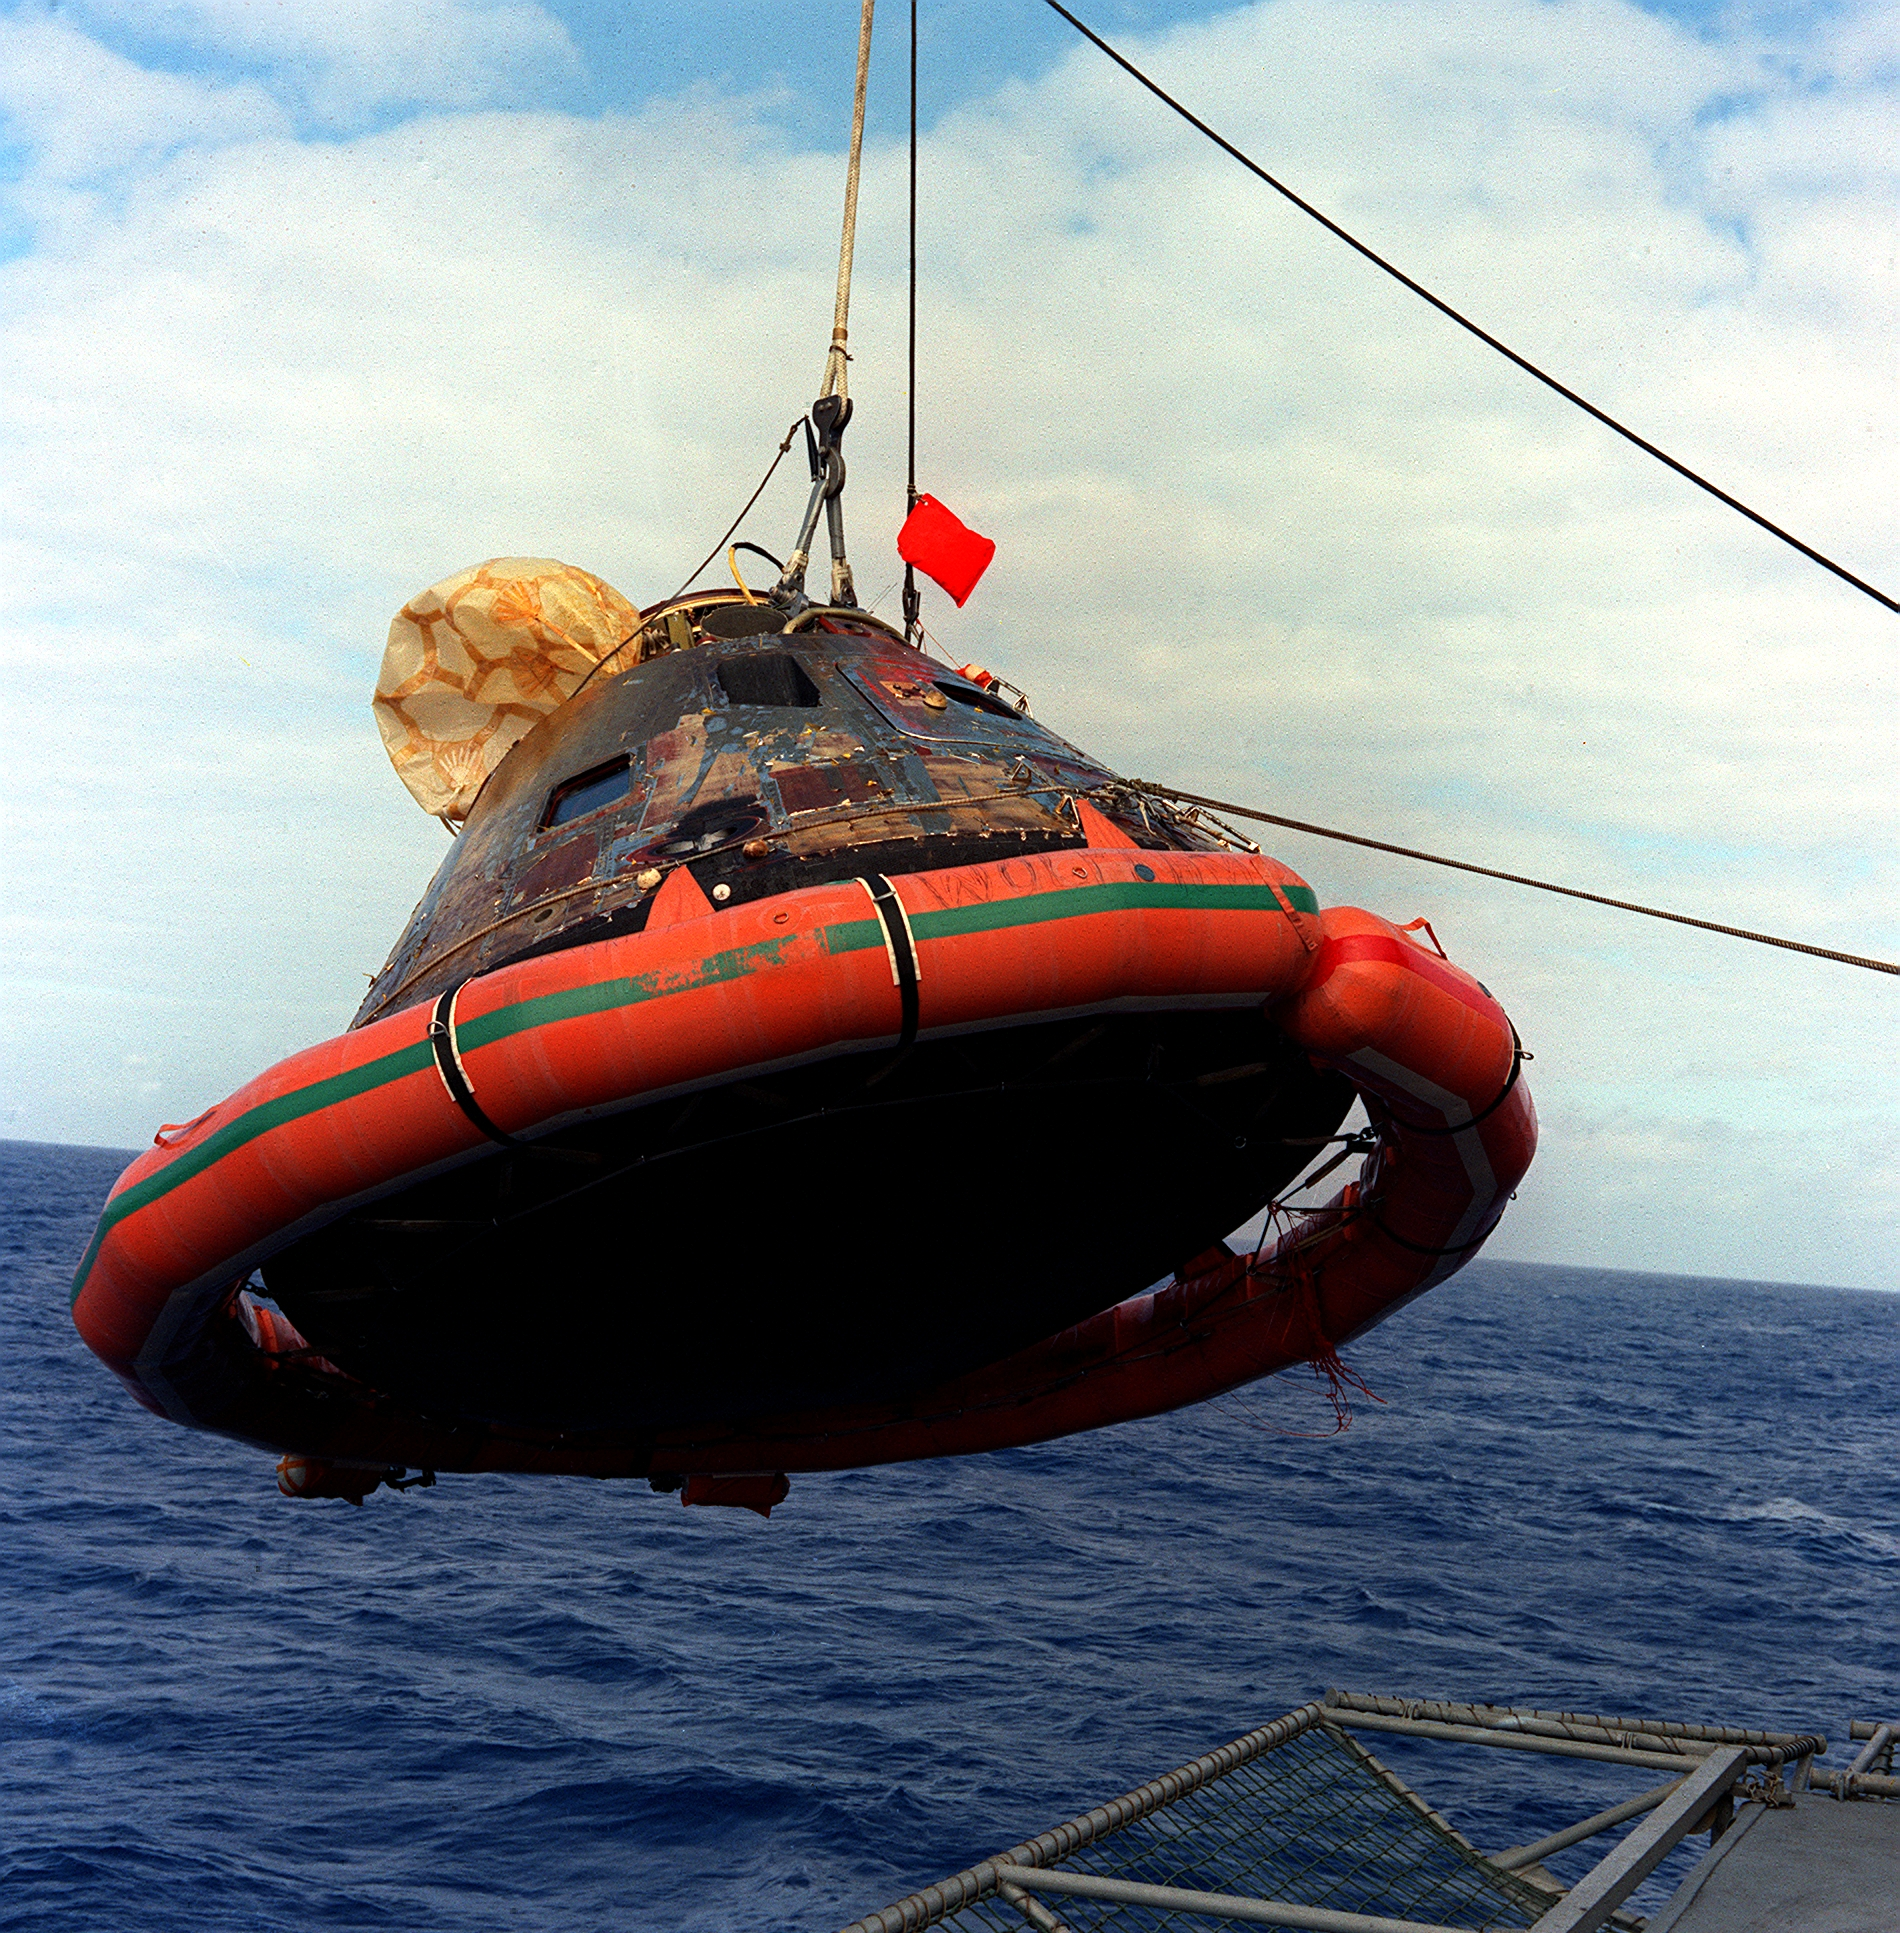 50 Years Ago Today: Apollo 11 Command Module Recovered After Splashdown